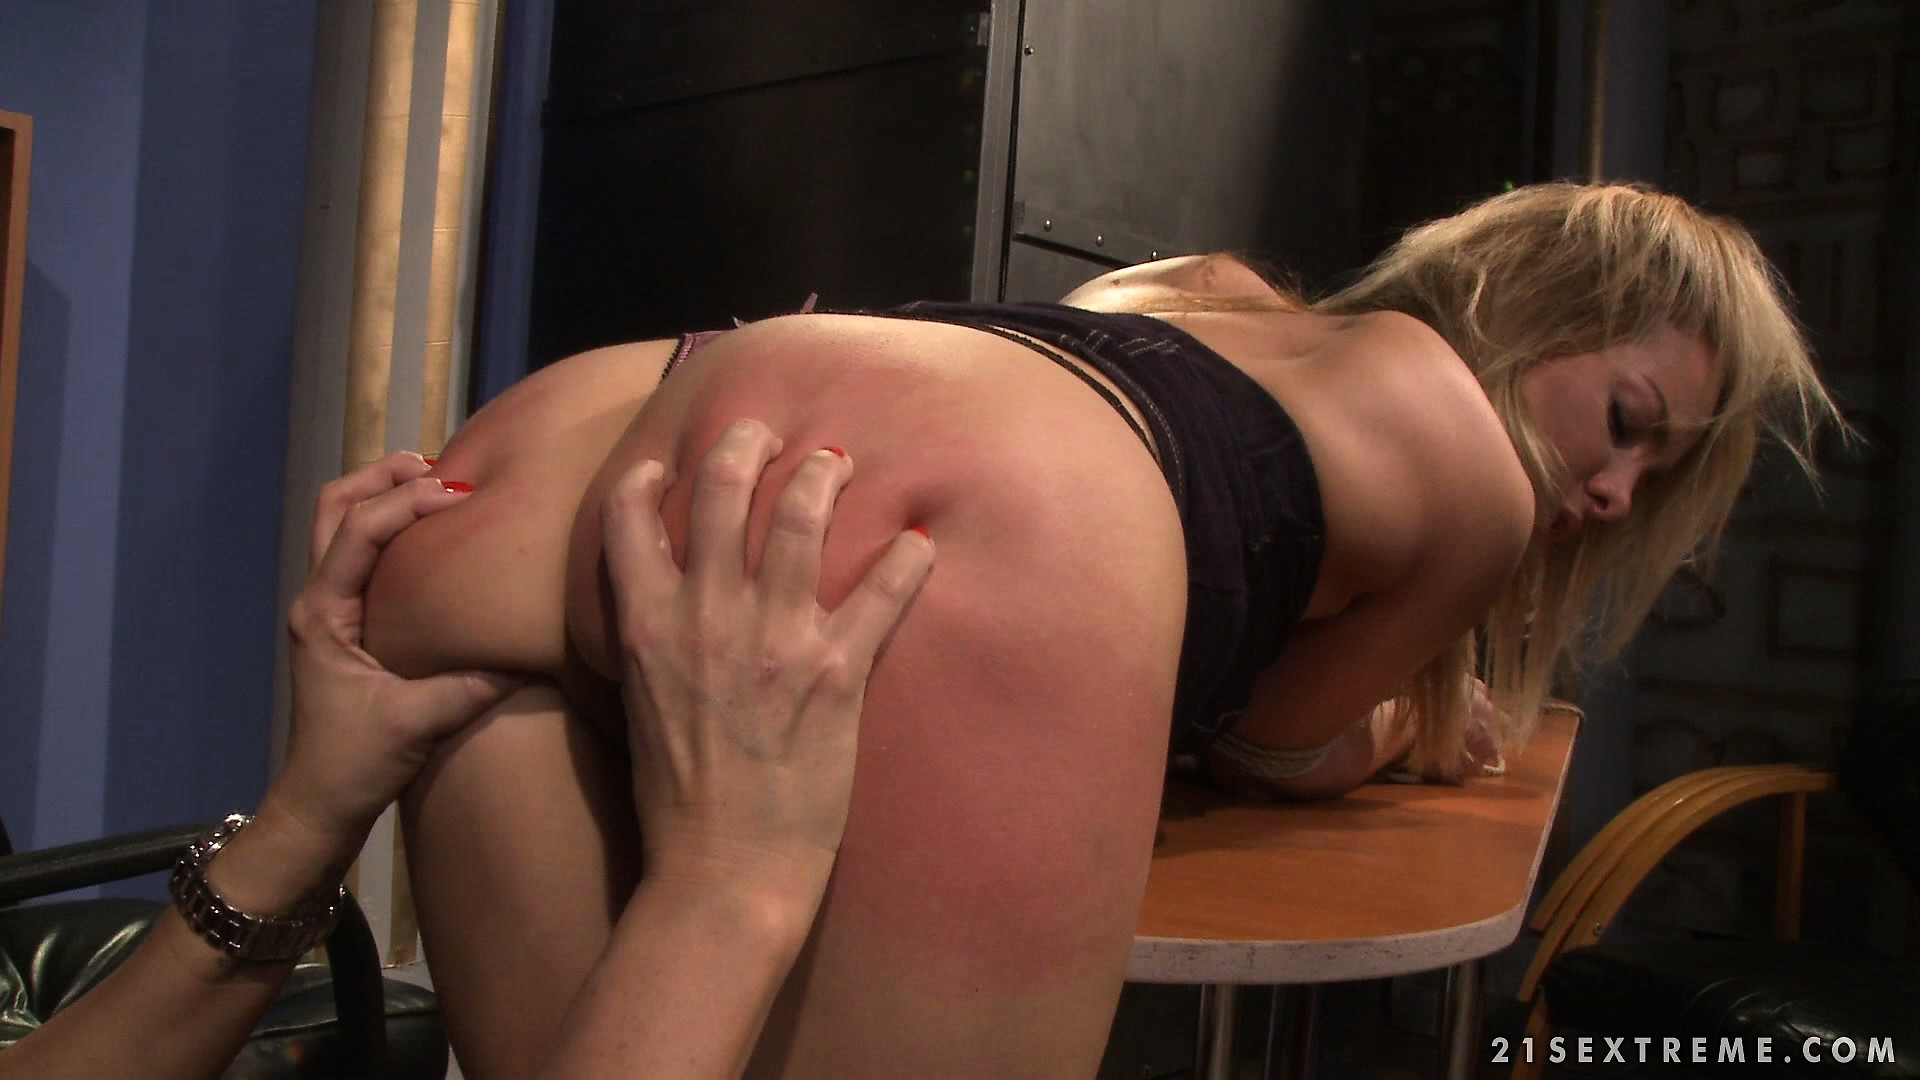 Porn Tube of She's Bent Over The Table And Gets Her Ass Fondled And Spanked